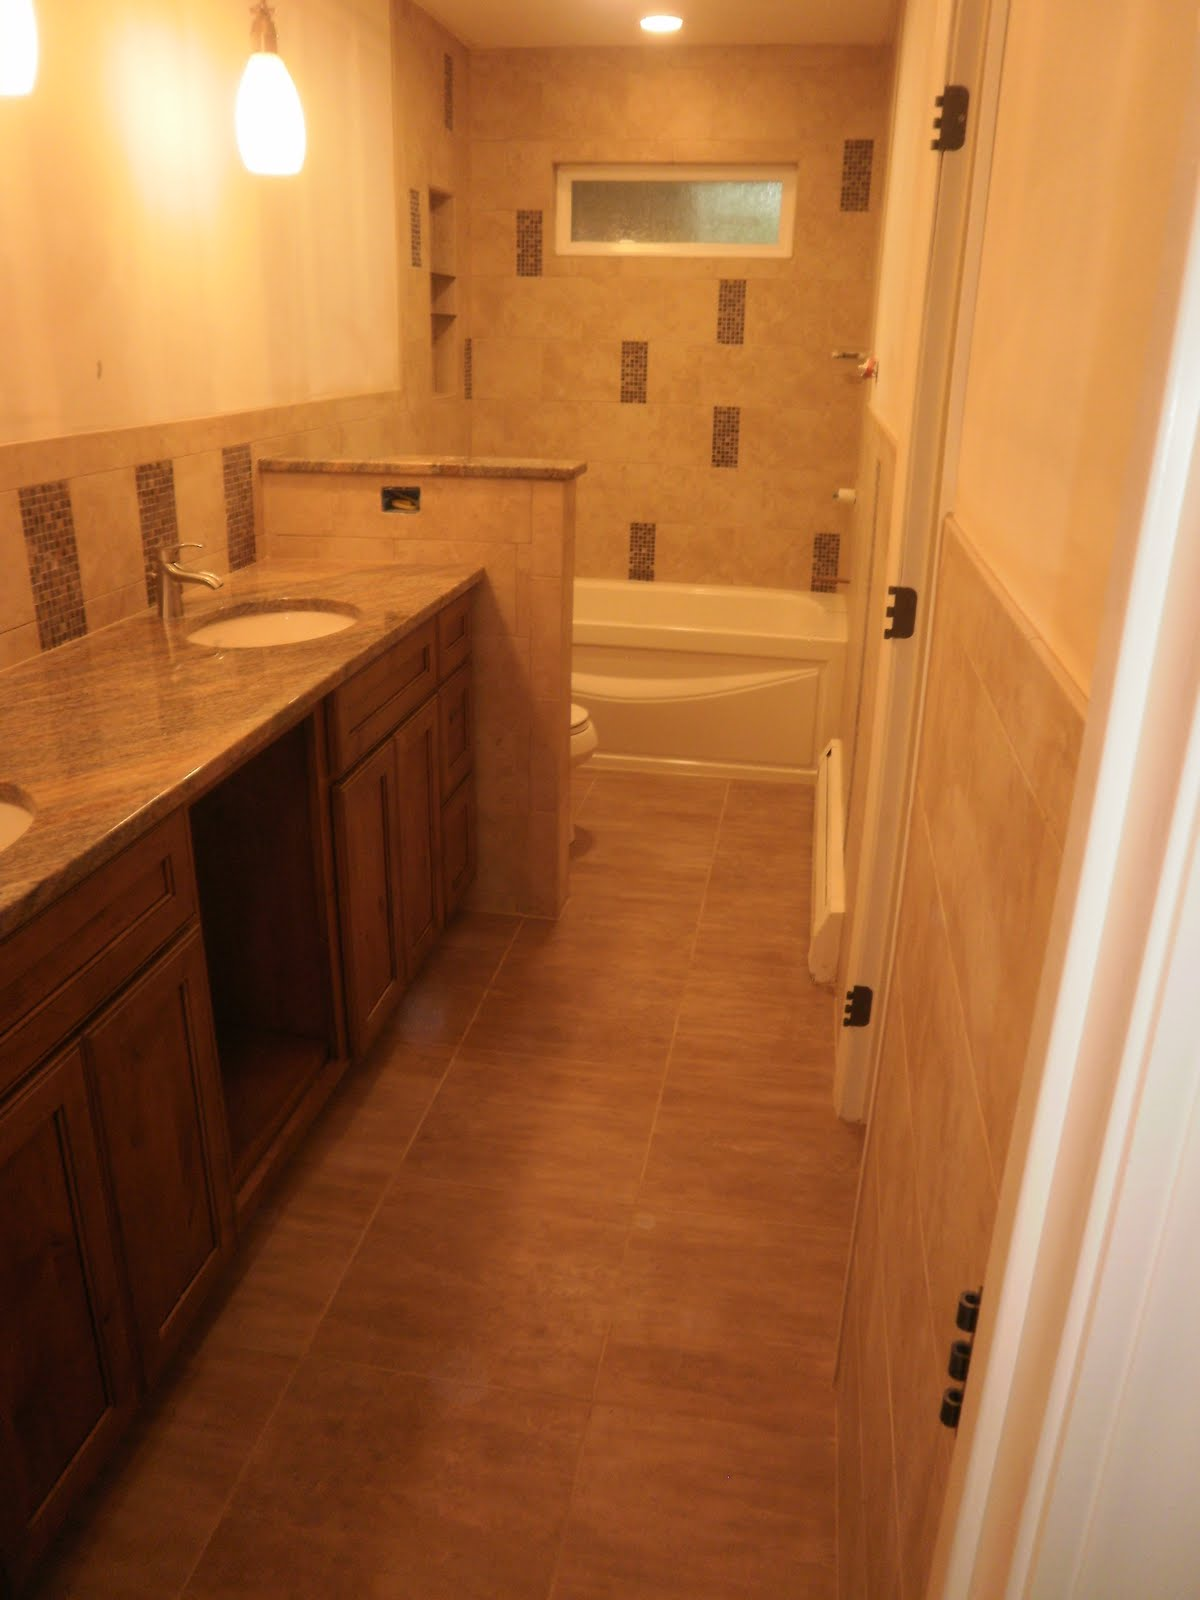 Integrity installations a division of front for Bathroom remodel 8x5